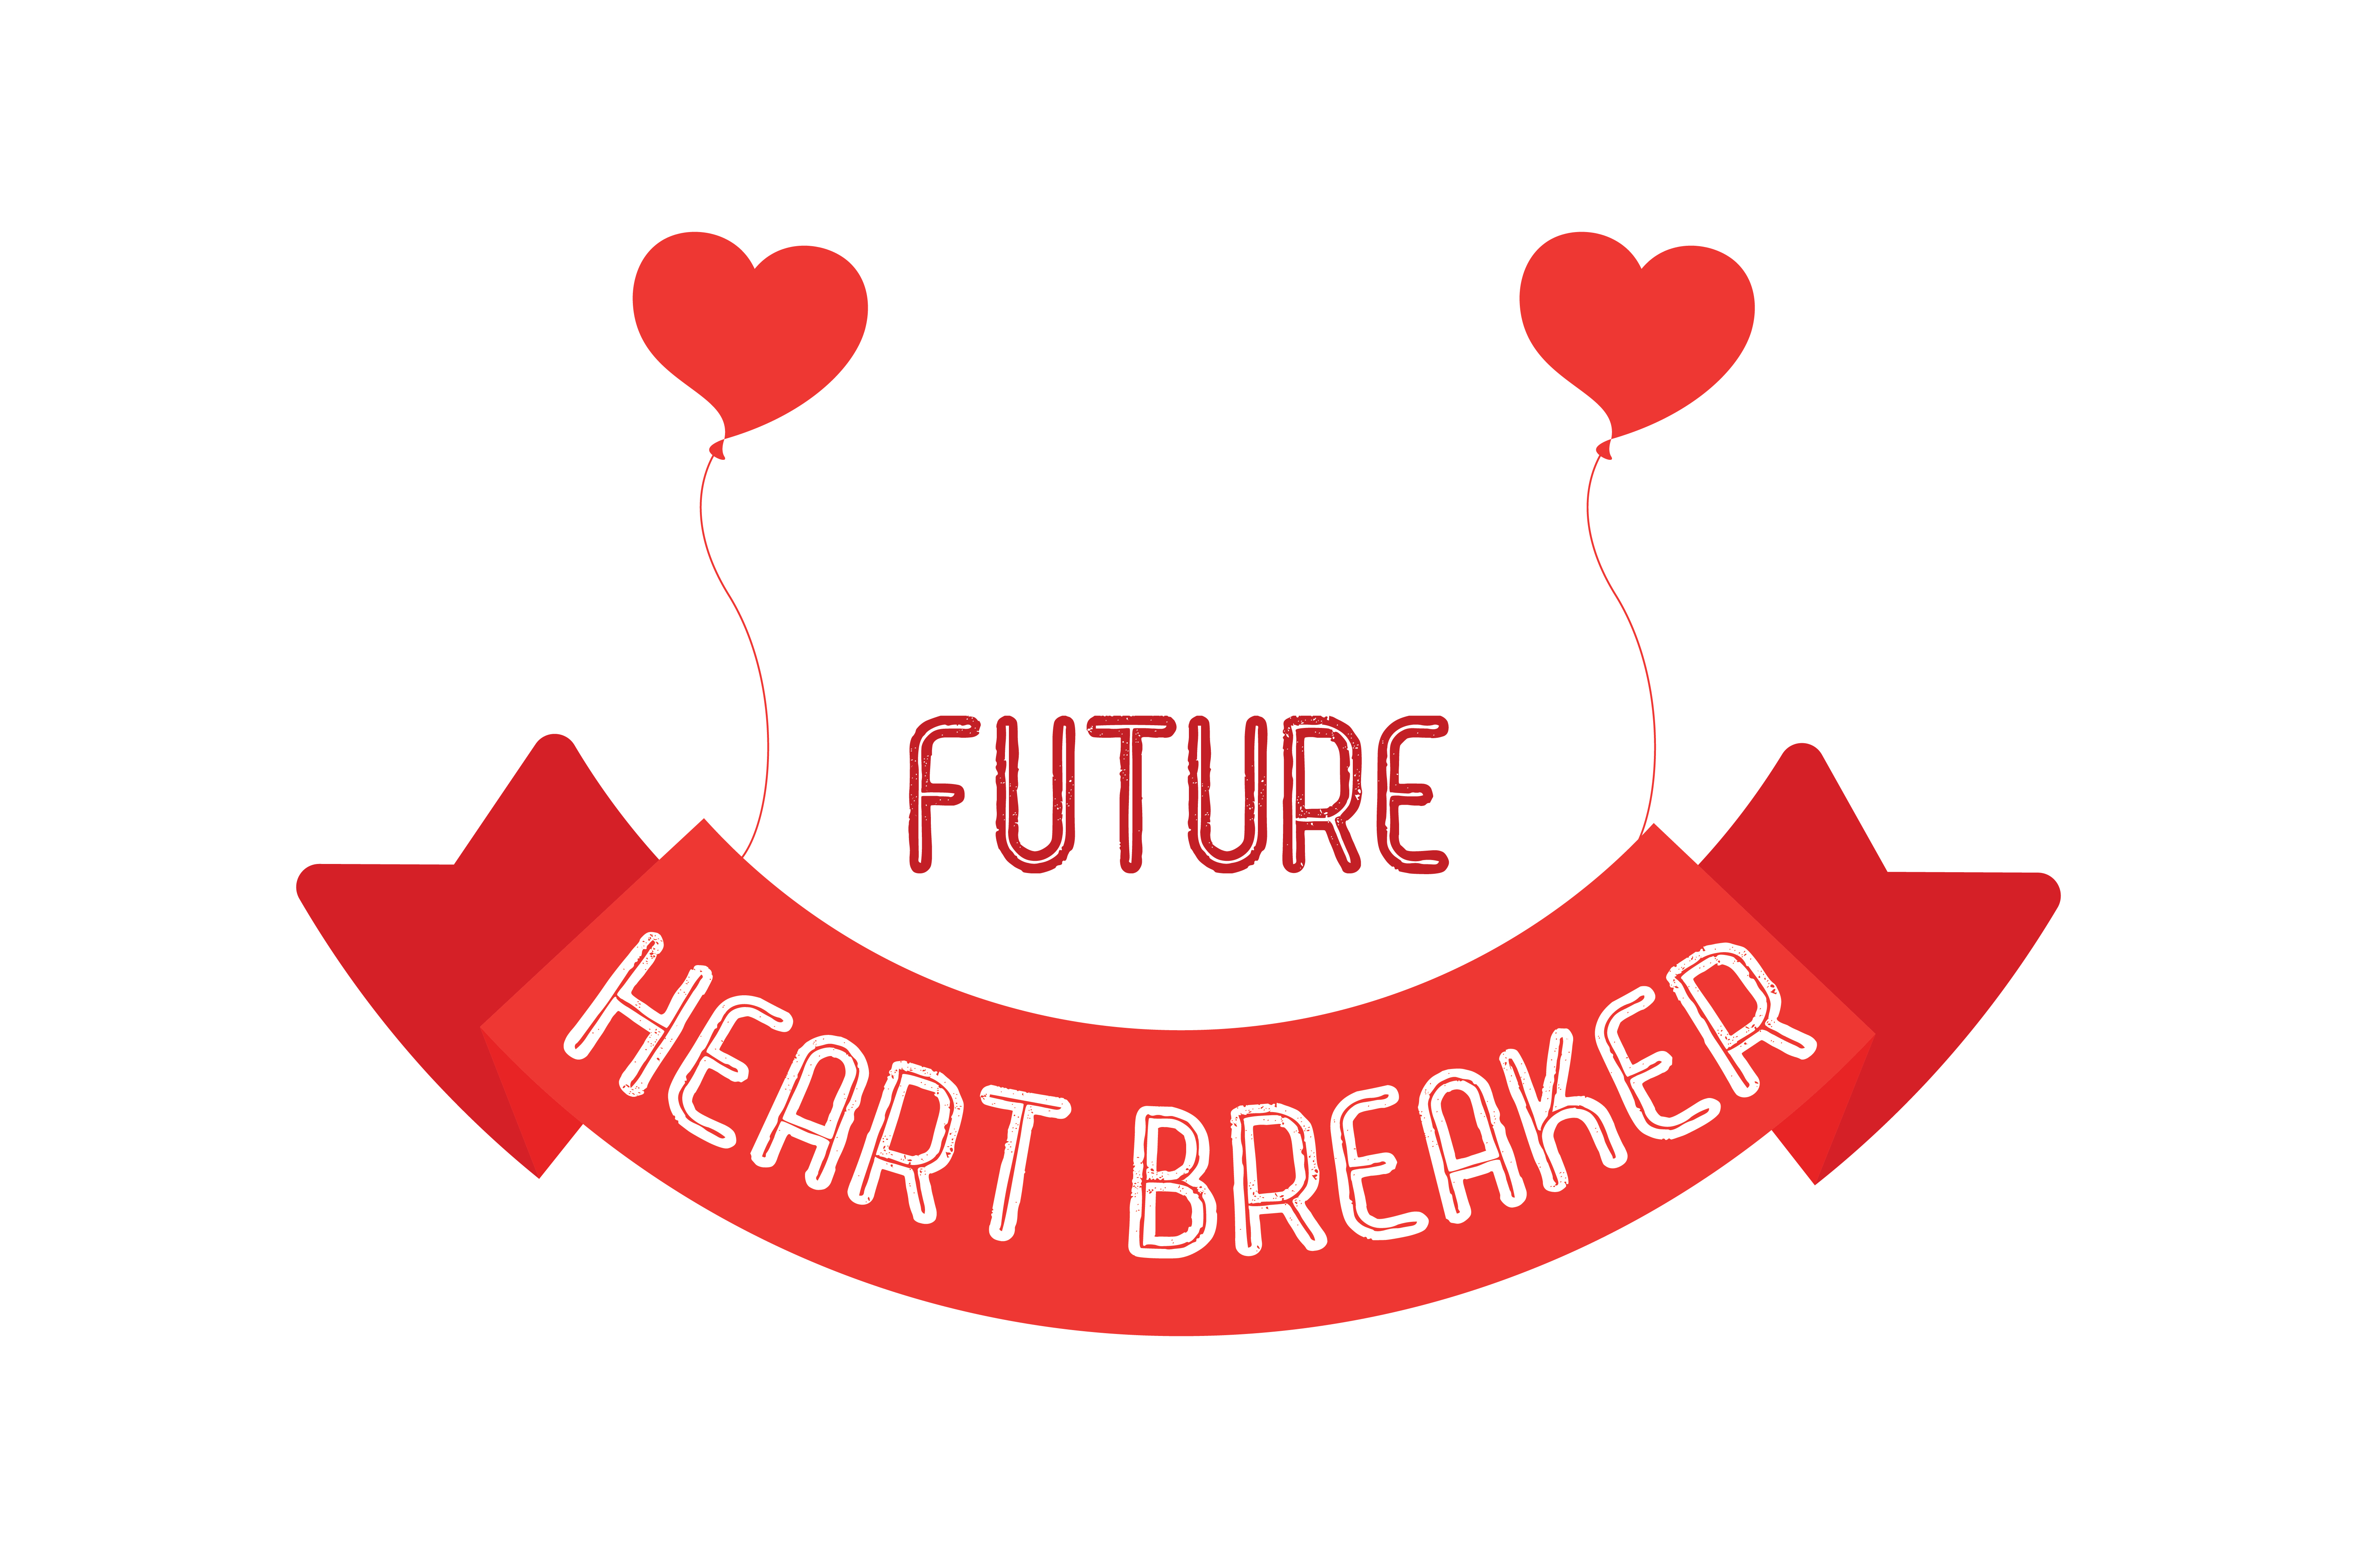 Download Free Future Heart Breaker Quote Svg Cut Graphic By Thelucky for Cricut Explore, Silhouette and other cutting machines.